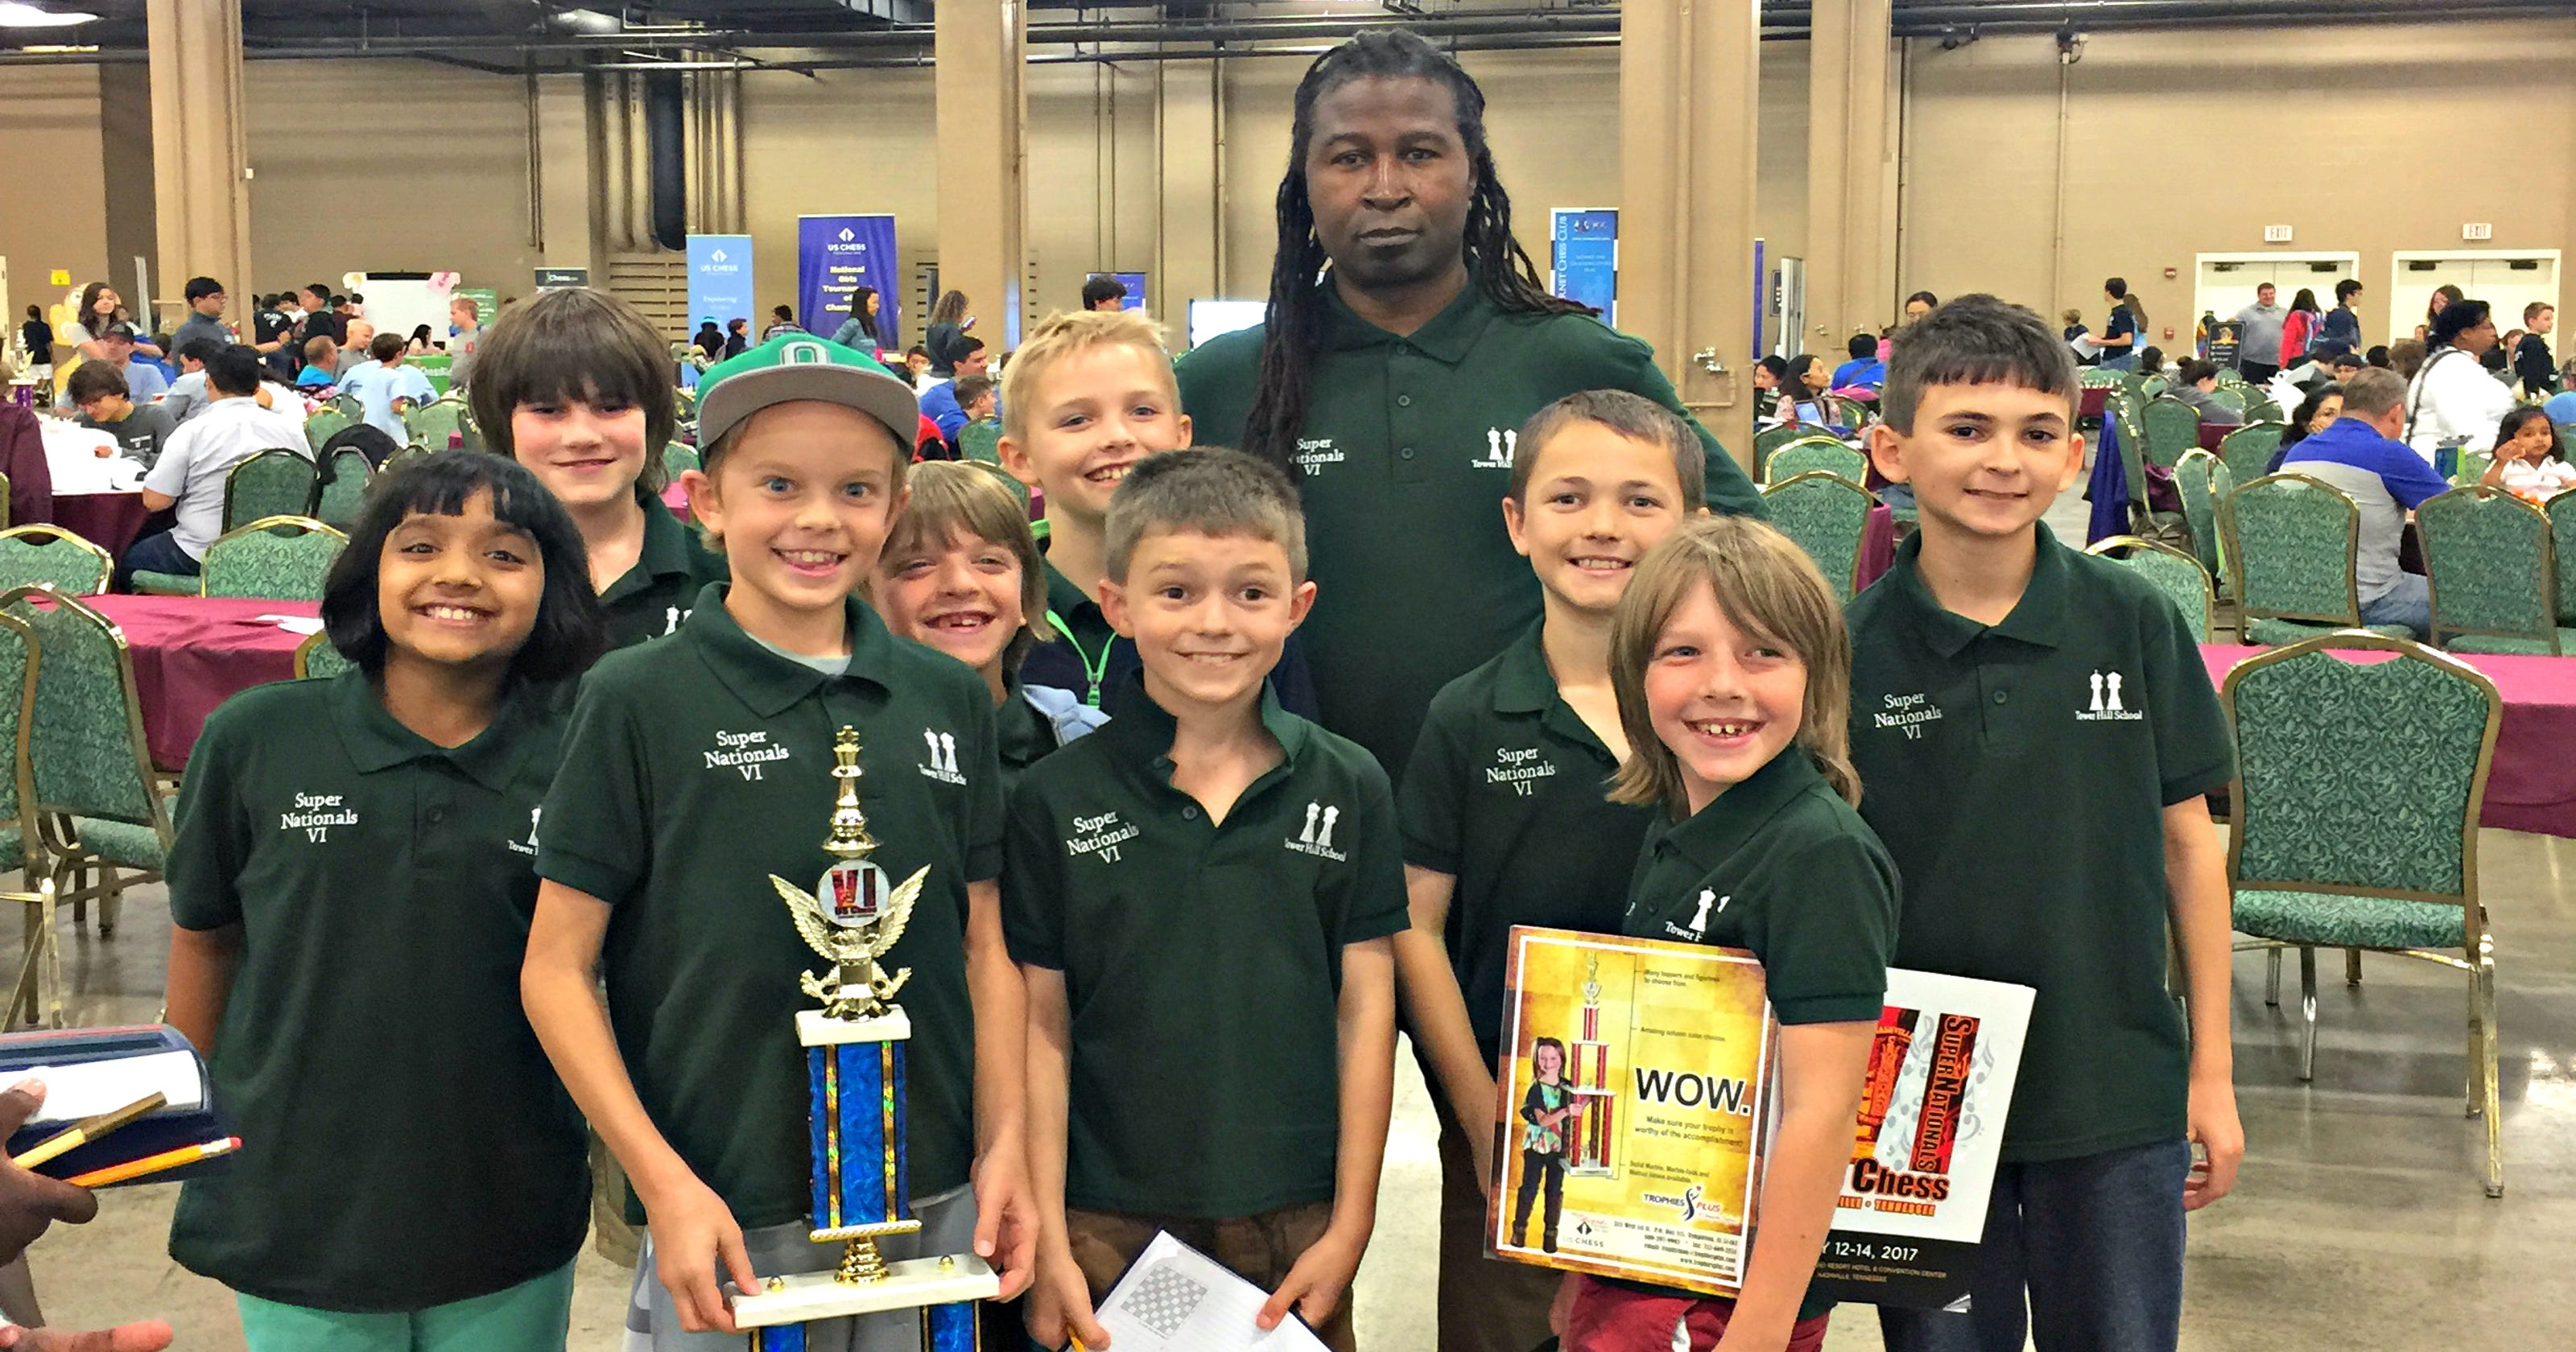 Chess coach teaches kids patience, visual imagery